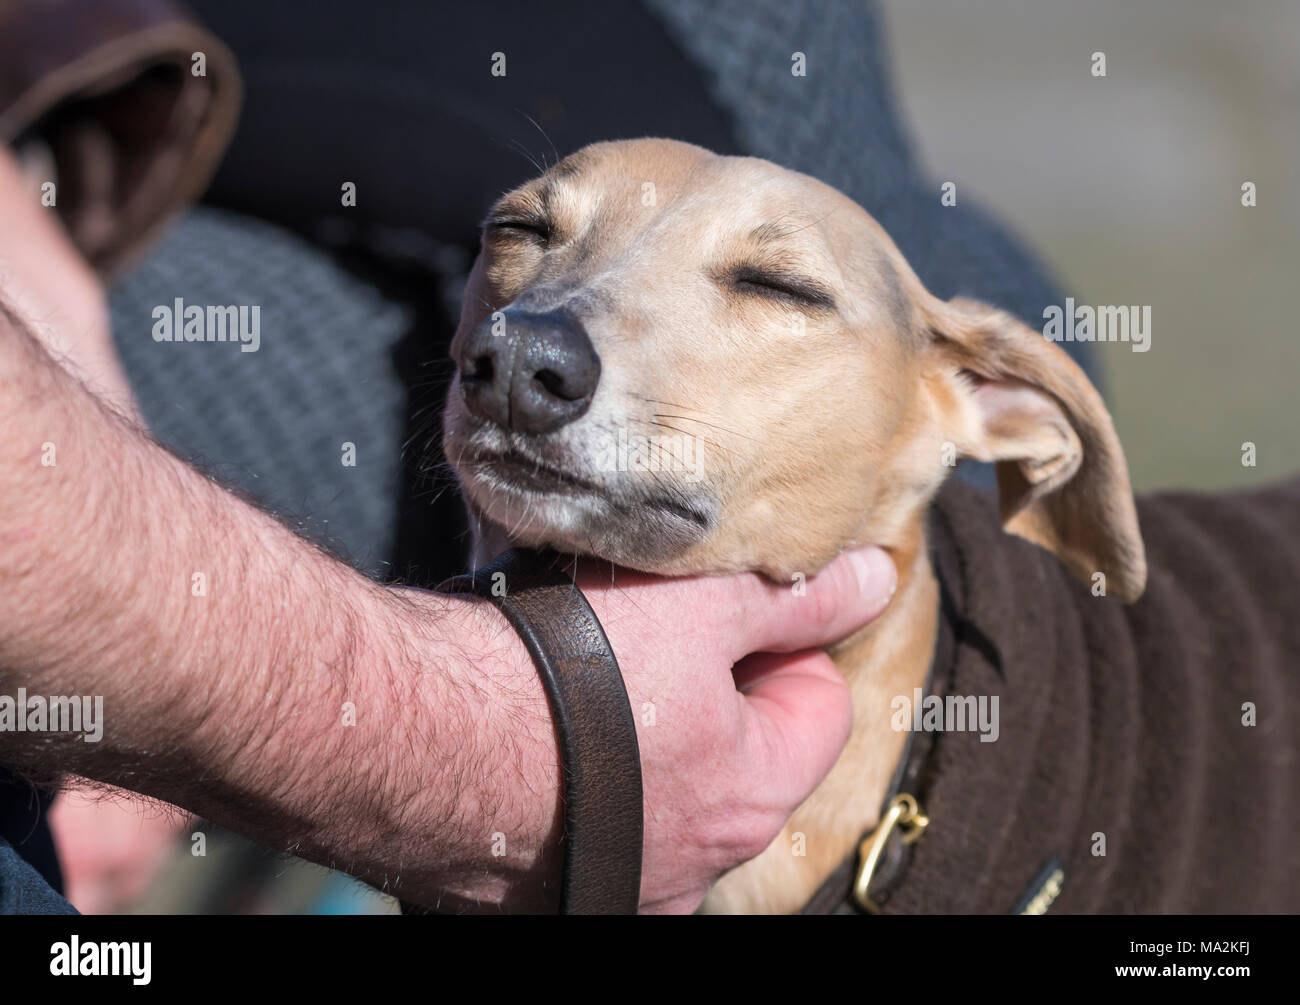 Whippet dog being petted by the owner scratching its head. Petting a dog. Love concept. - Stock Image